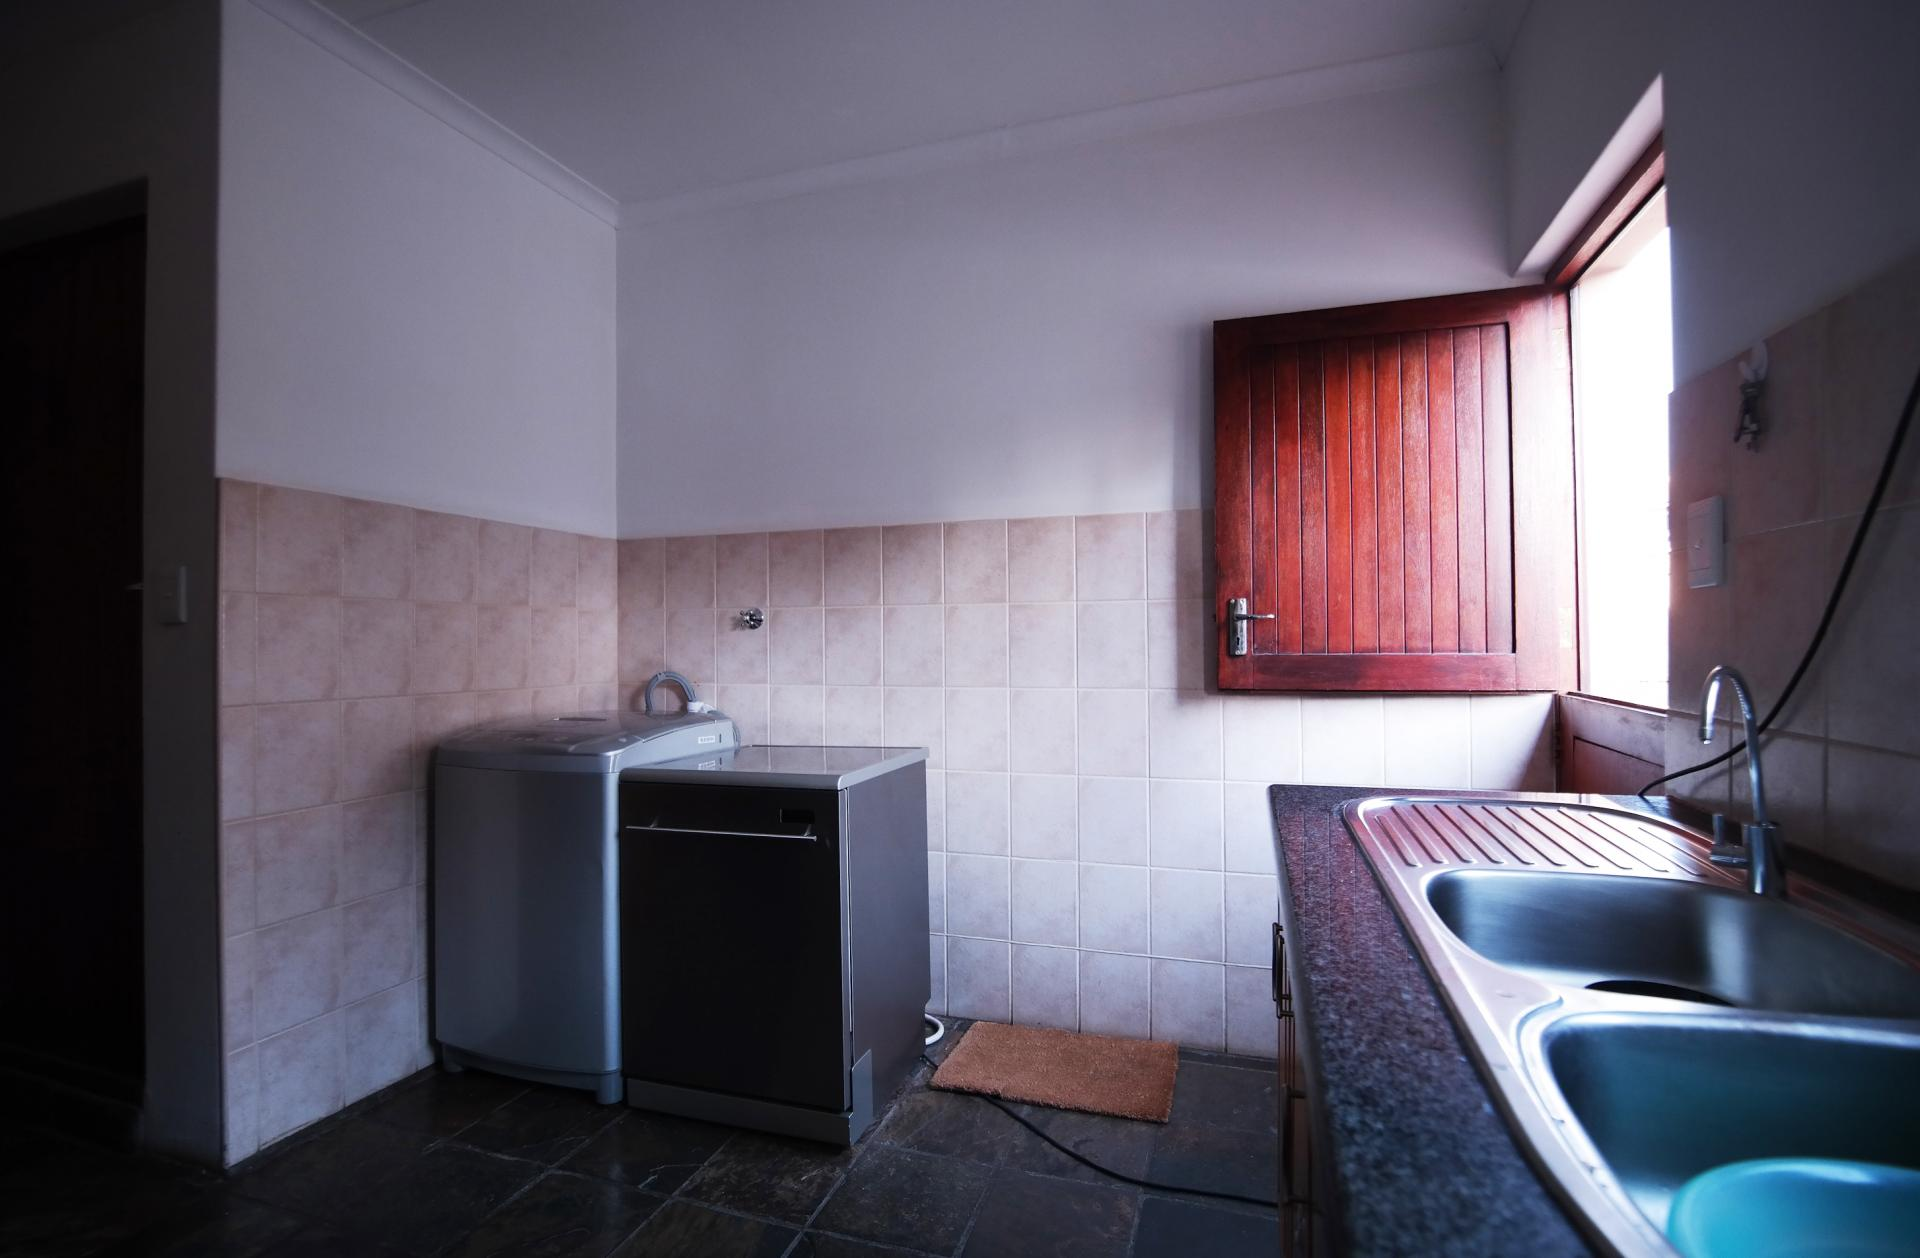 4 Bedroom House For Sale For Sale In Woodlands Lifestyle